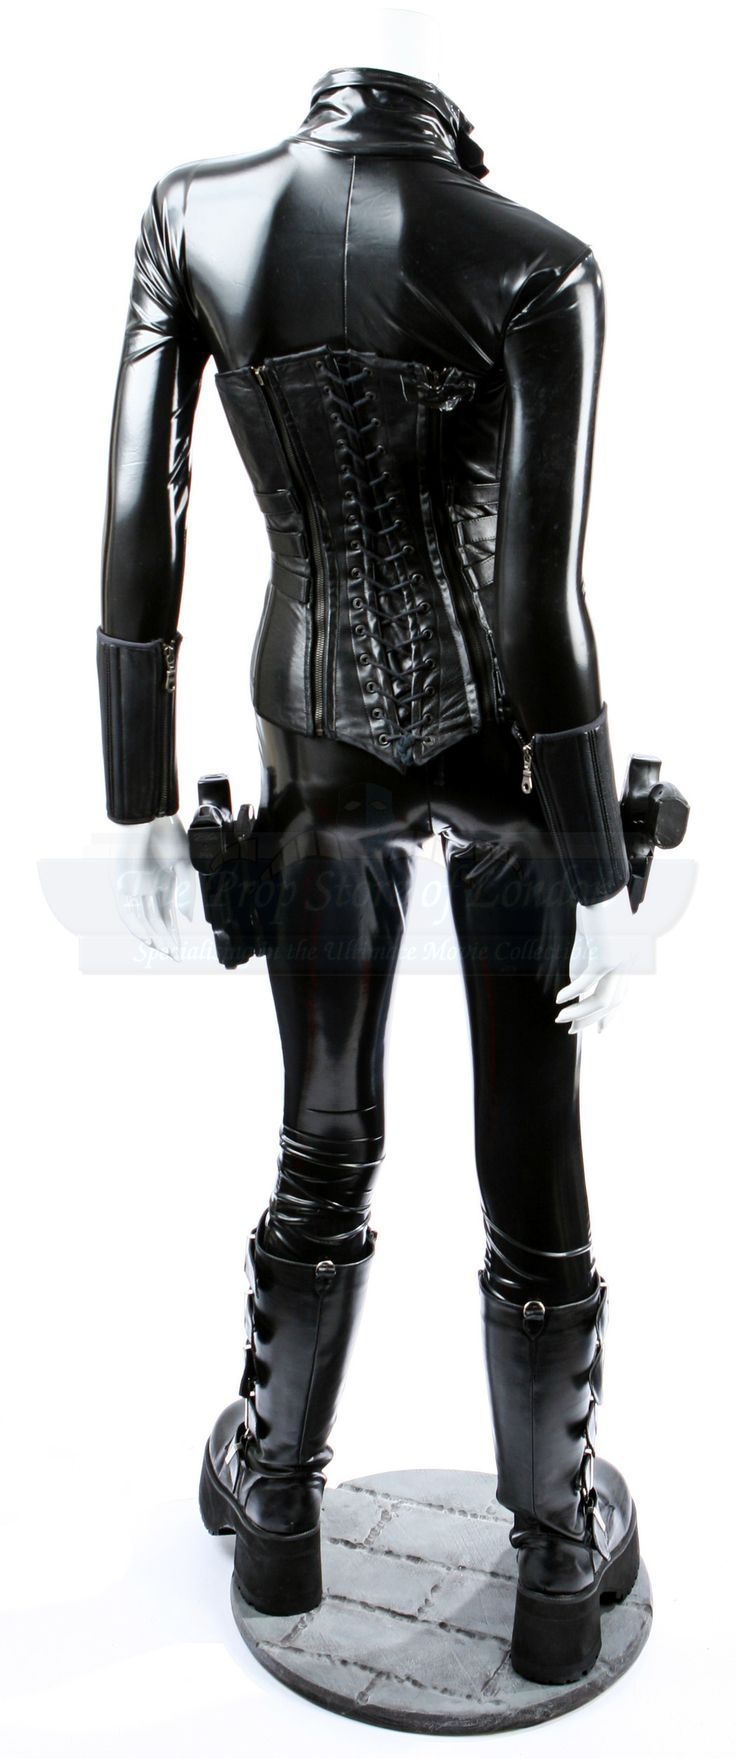 http://www.propstore.com/img/products/882/Underworld_Kate_Beckinsale_Costume_3.JPG